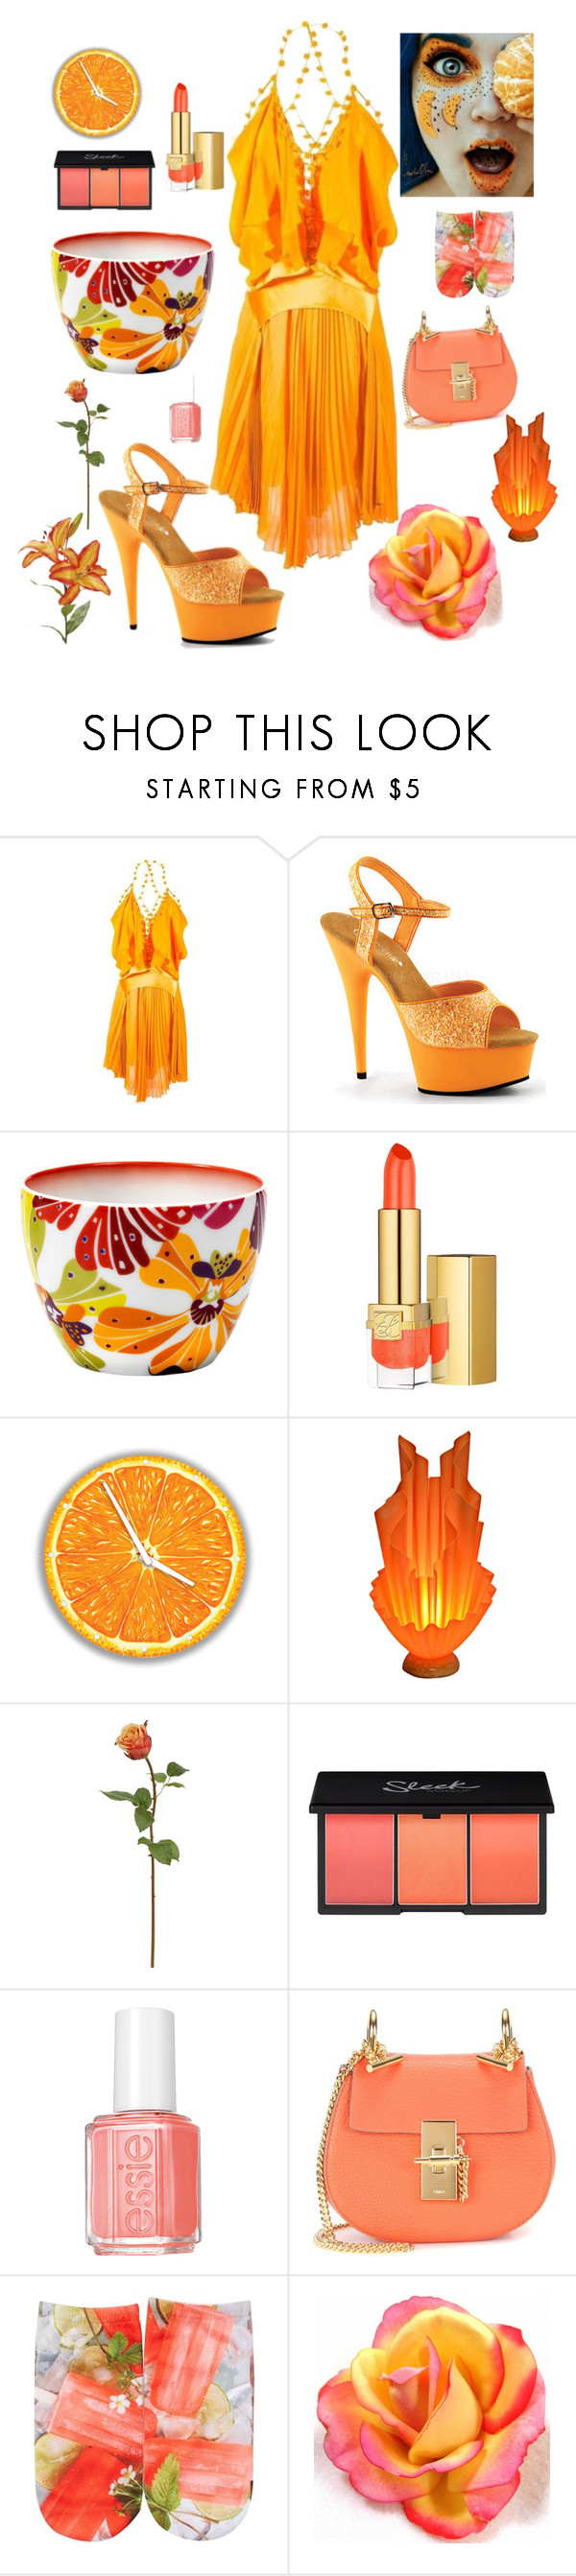 """Springtime Beauty"" by kotnourka ❤ liked on Polyvore featuring Tom Ford, Pleaser, Missoni, Estée Lauder, Universal Lighting and Decor, Essie, Chloé and Free Press"